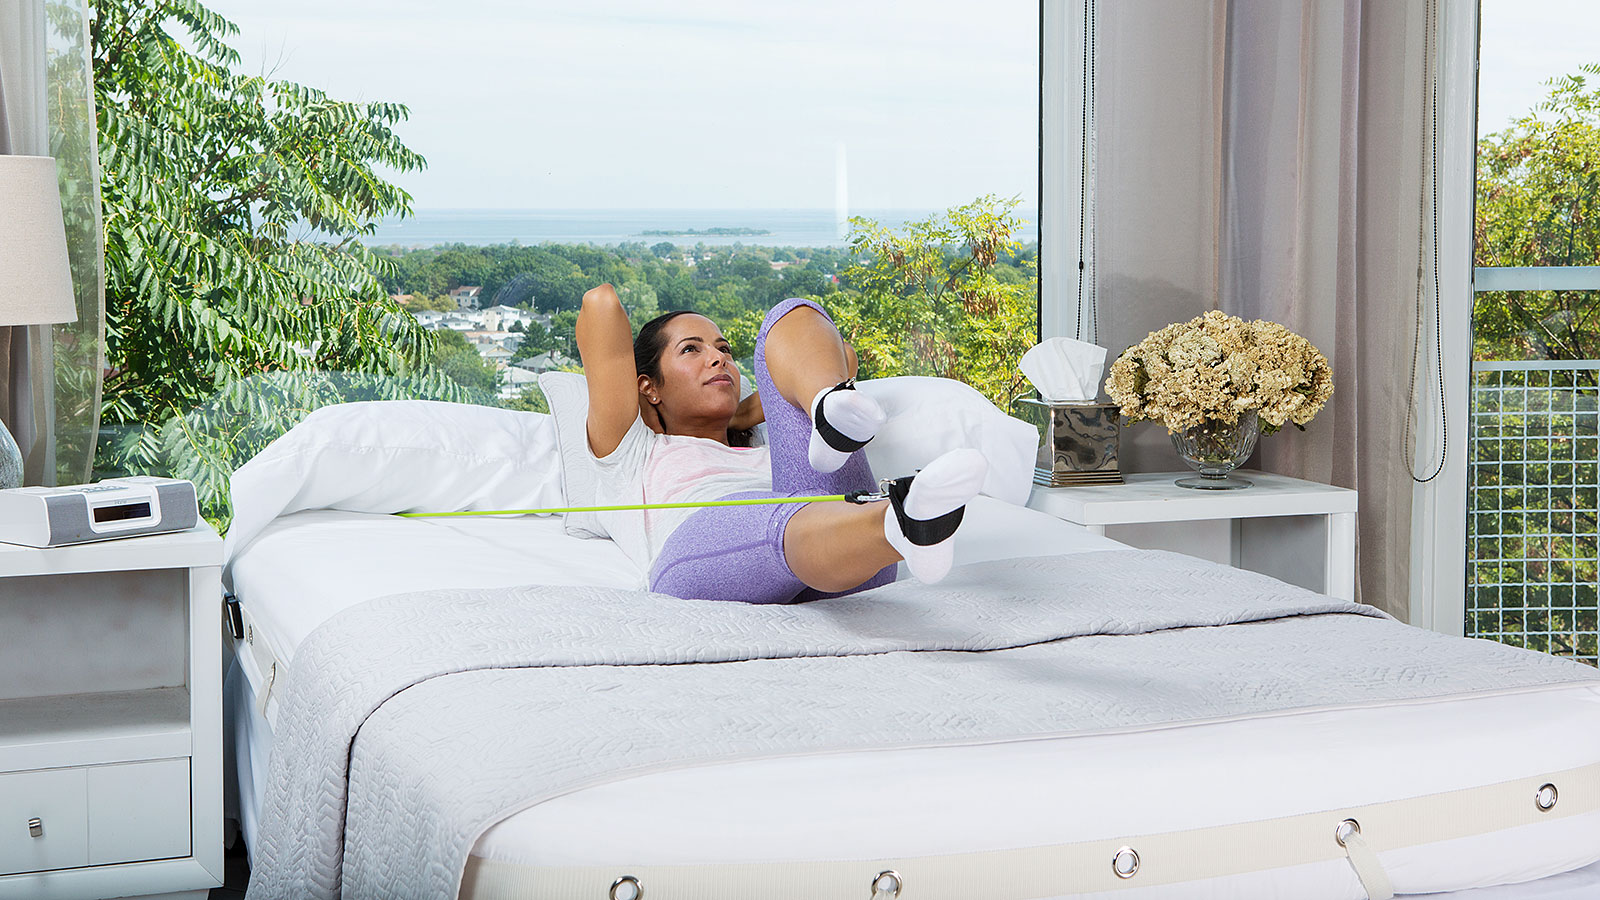 I tried this new product that lets you exercise in bed (and now my abs are killing me)